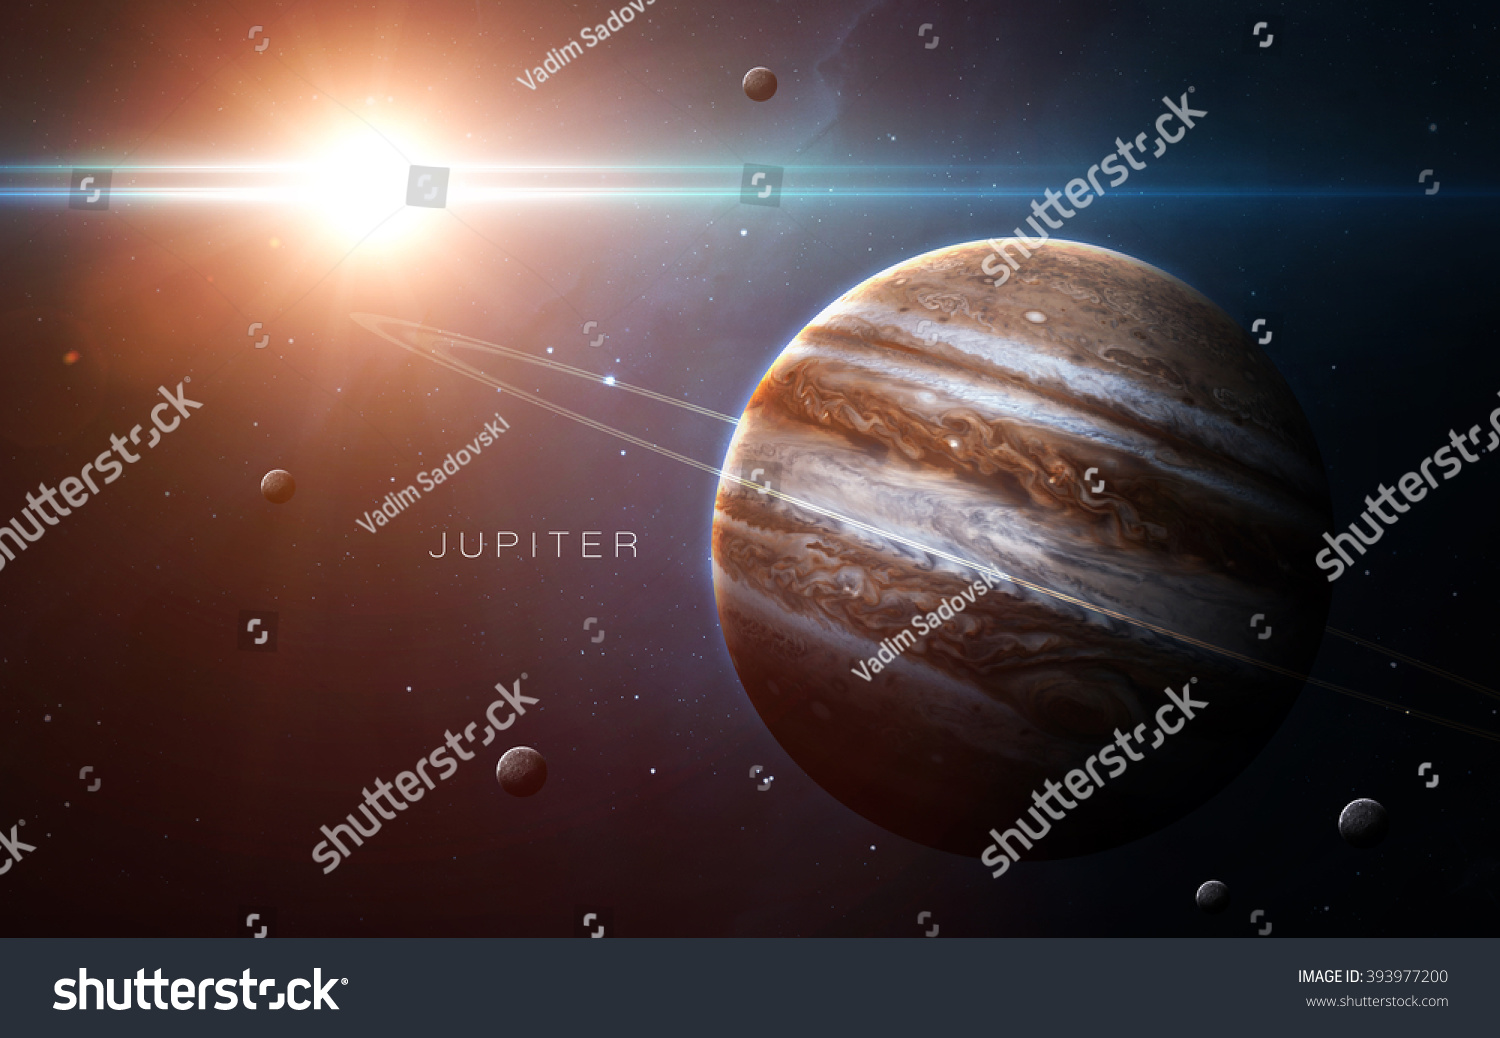 Jupiter High resolution 3D images presents planets of the solar system This image elements furnished by NASA